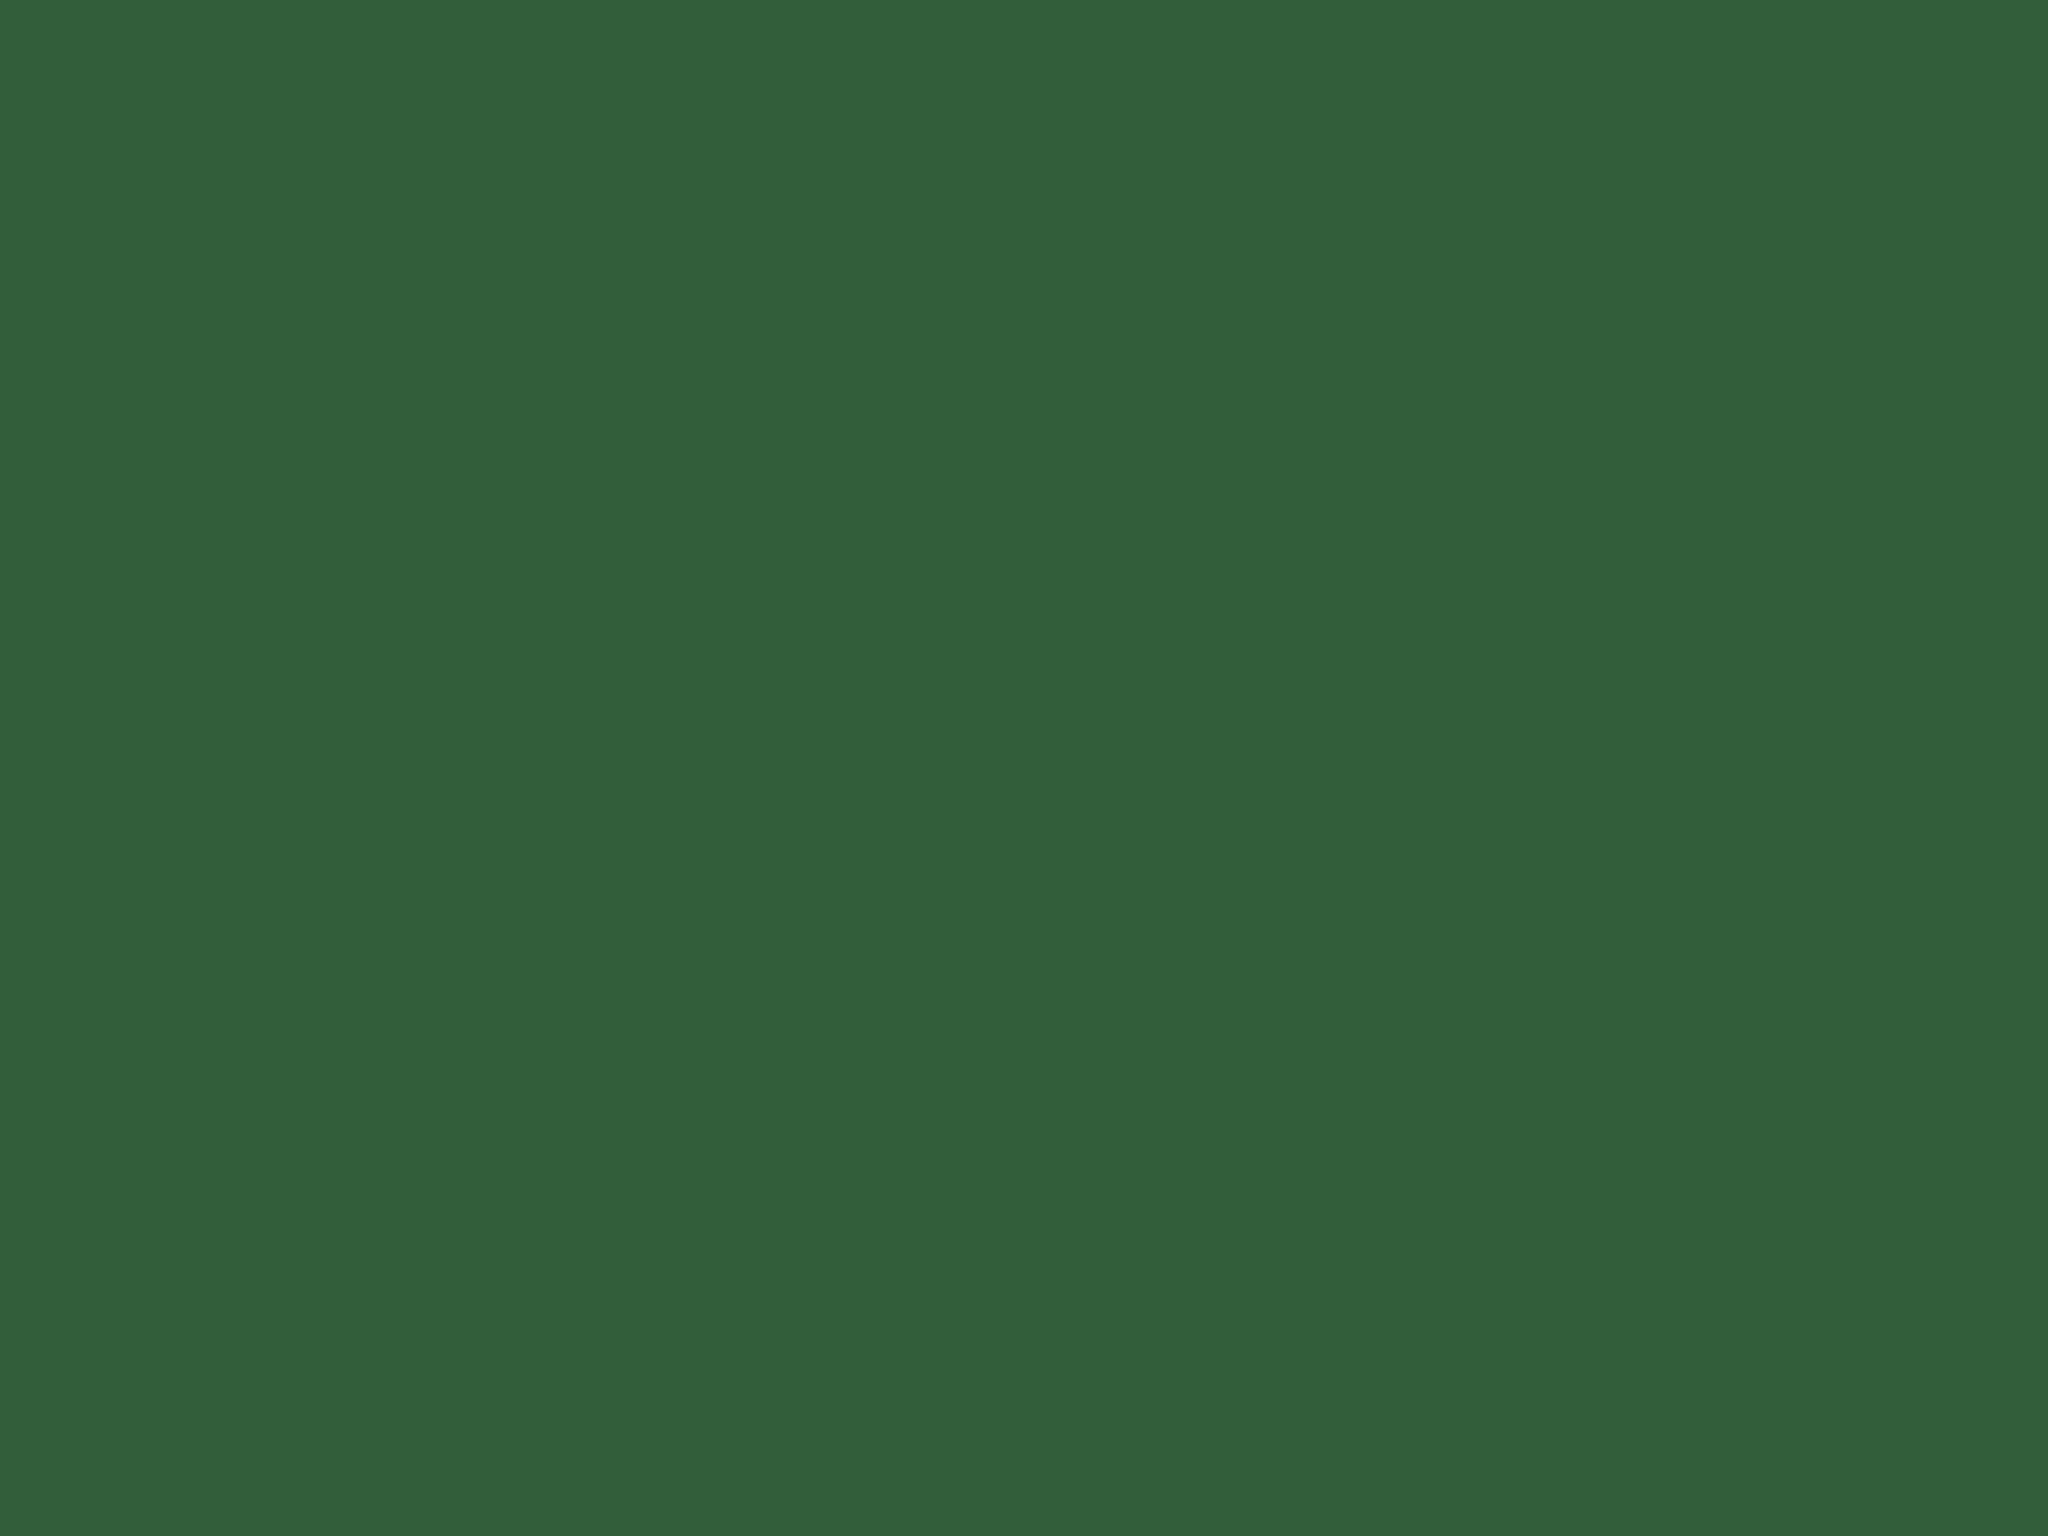 2048x1536 Hunter Green Solid Color Background